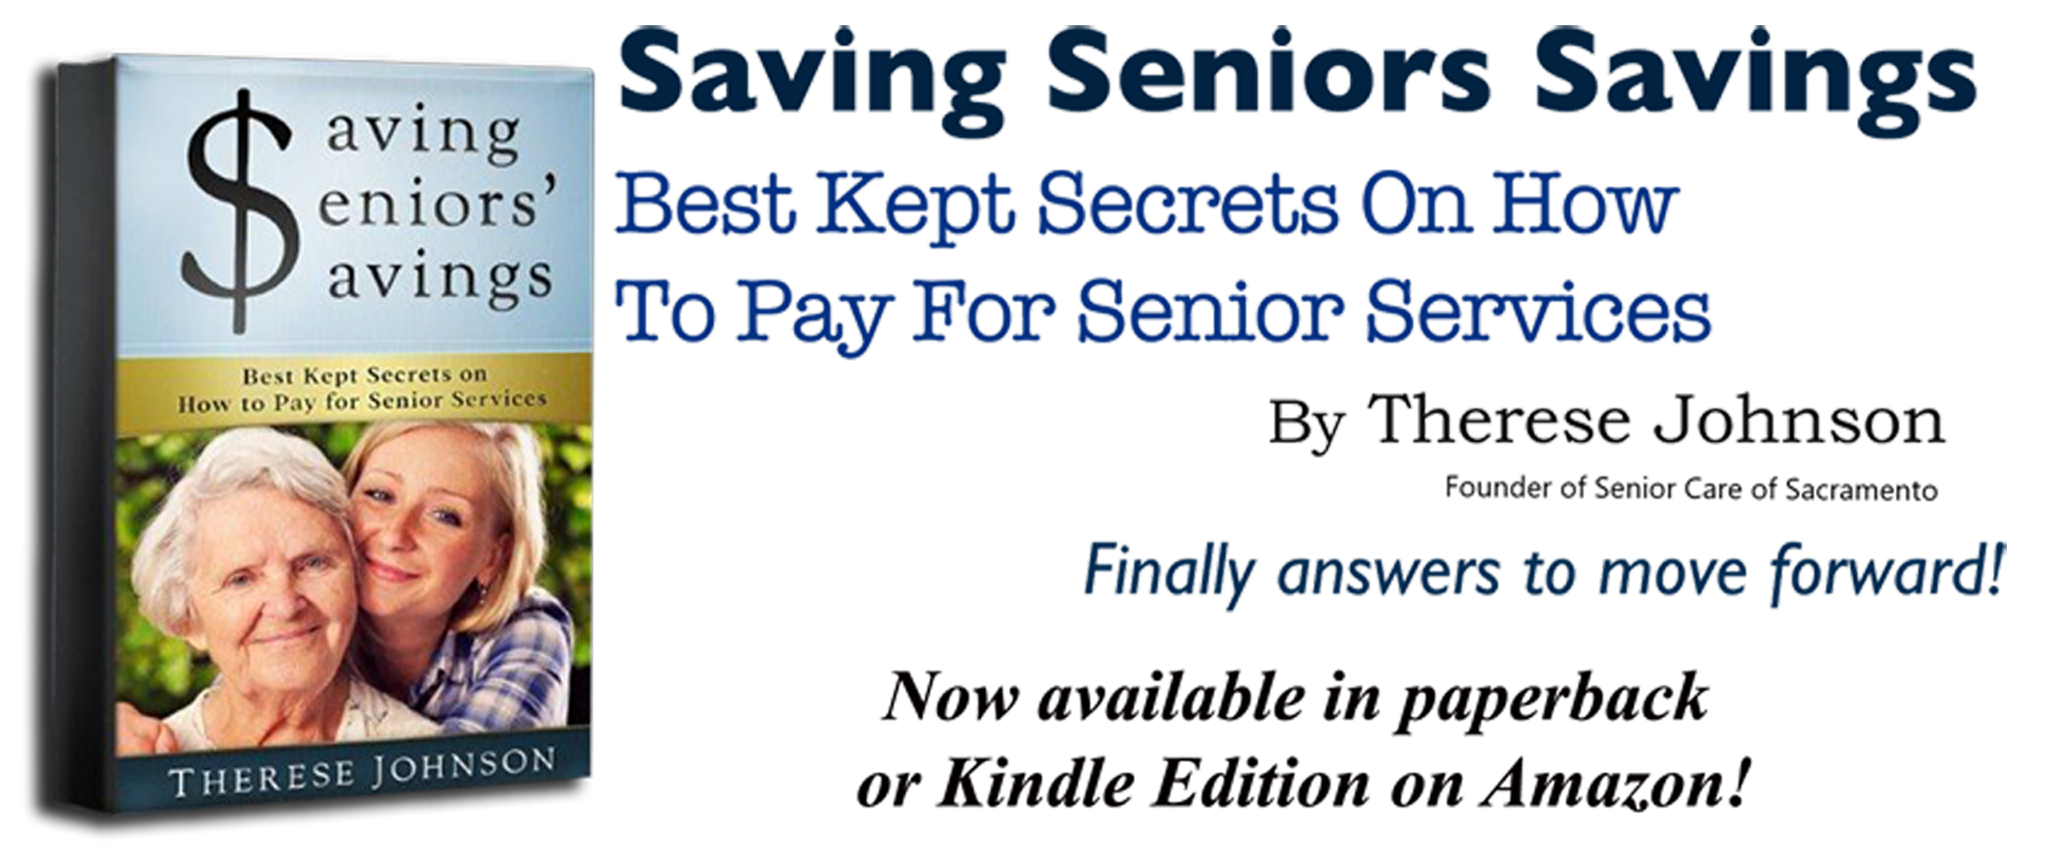 Saving Senior Savings